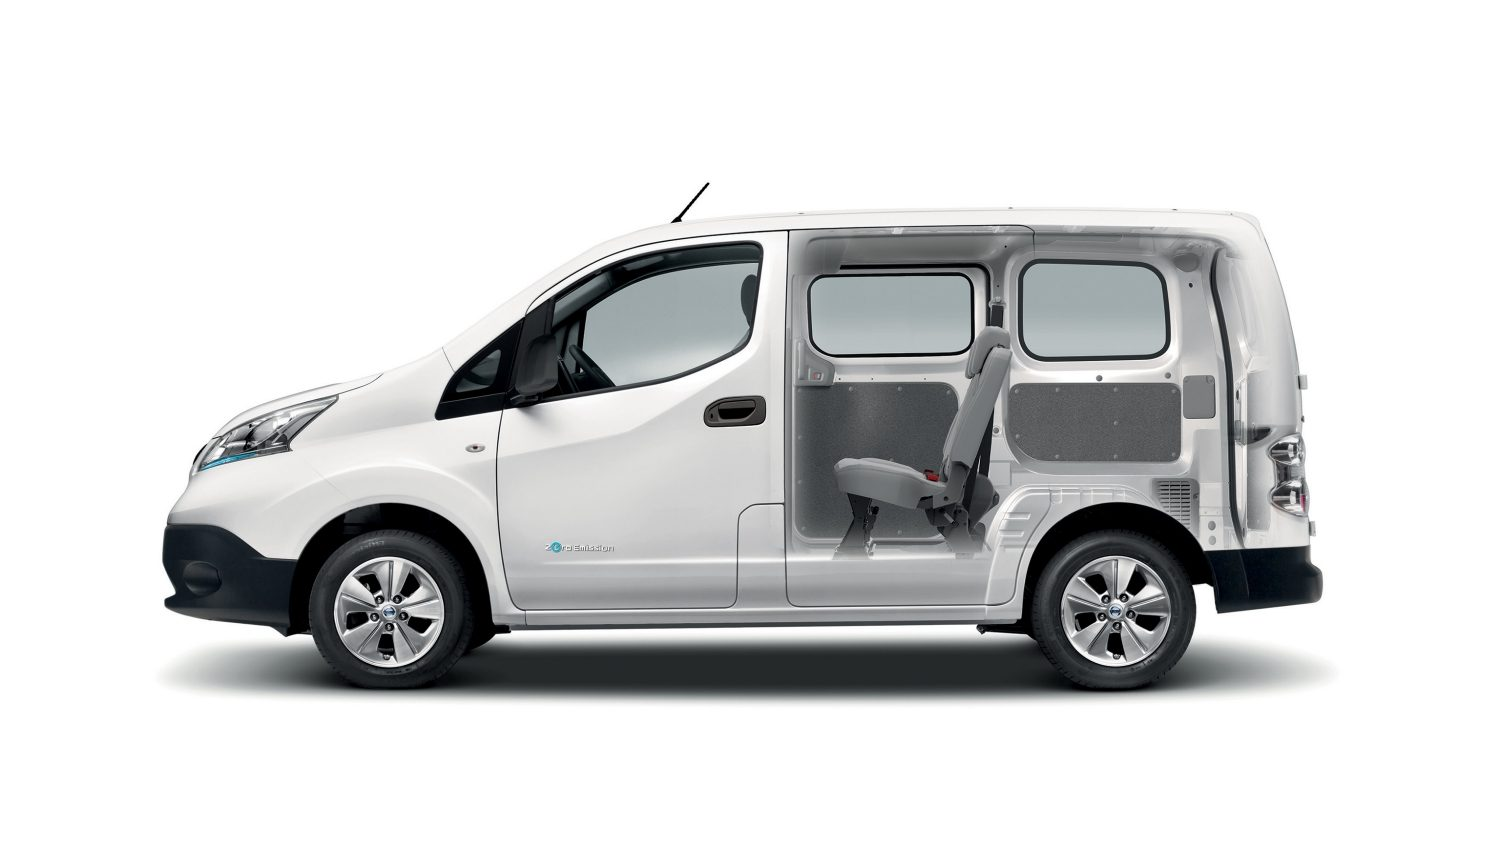 nissan e nv200 electric van nissan. Black Bedroom Furniture Sets. Home Design Ideas